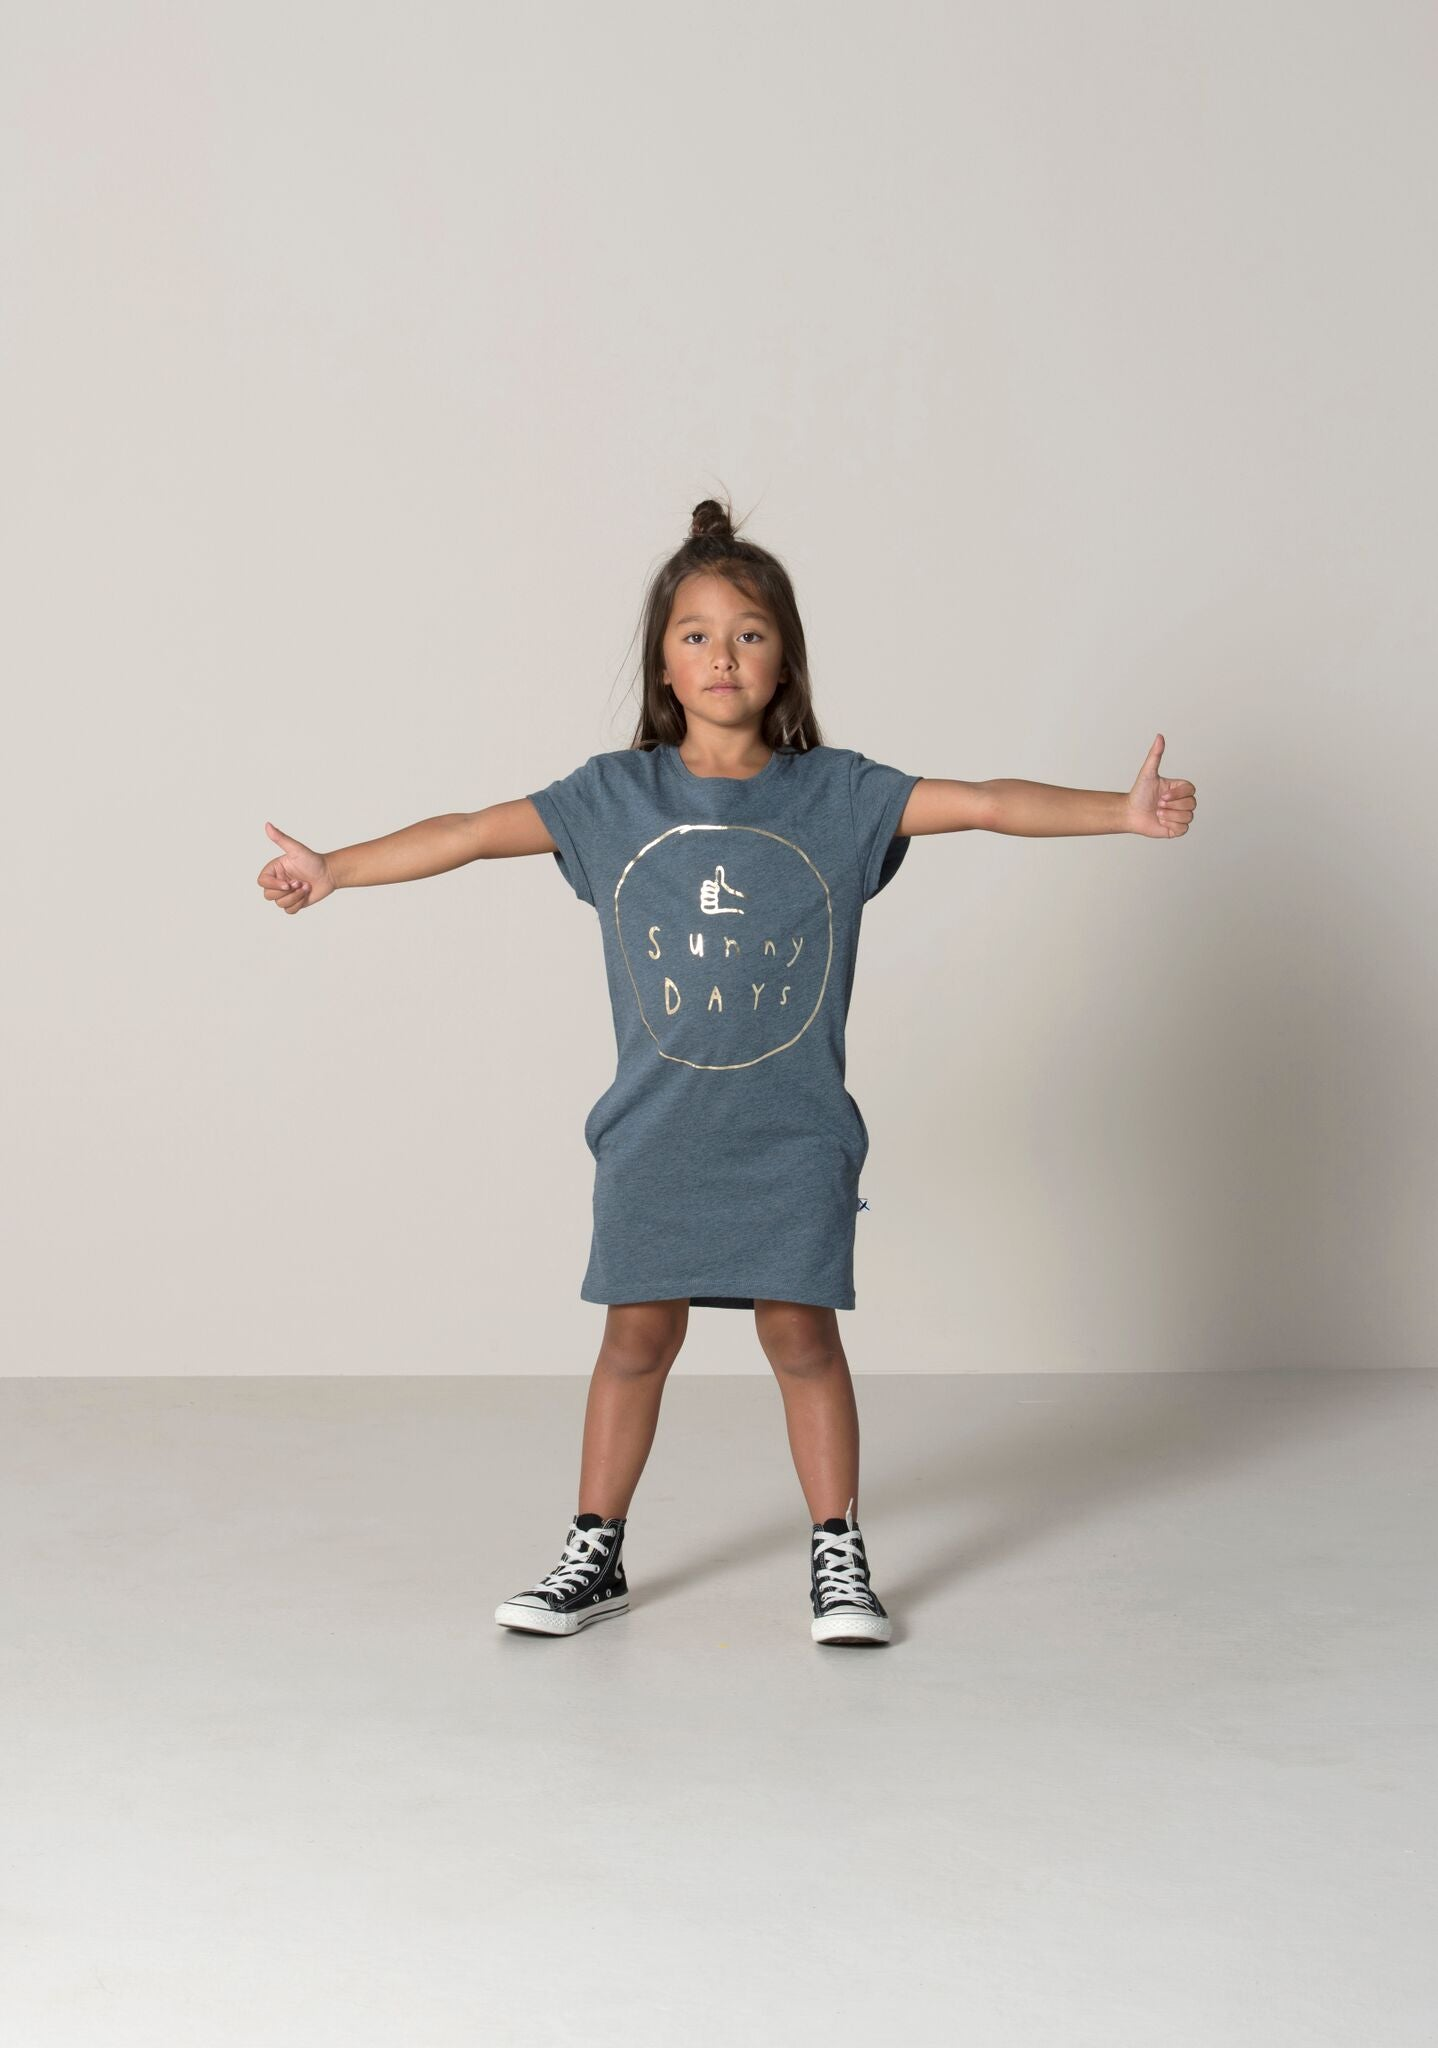 Sunny Days Rolled Up Tee Dress